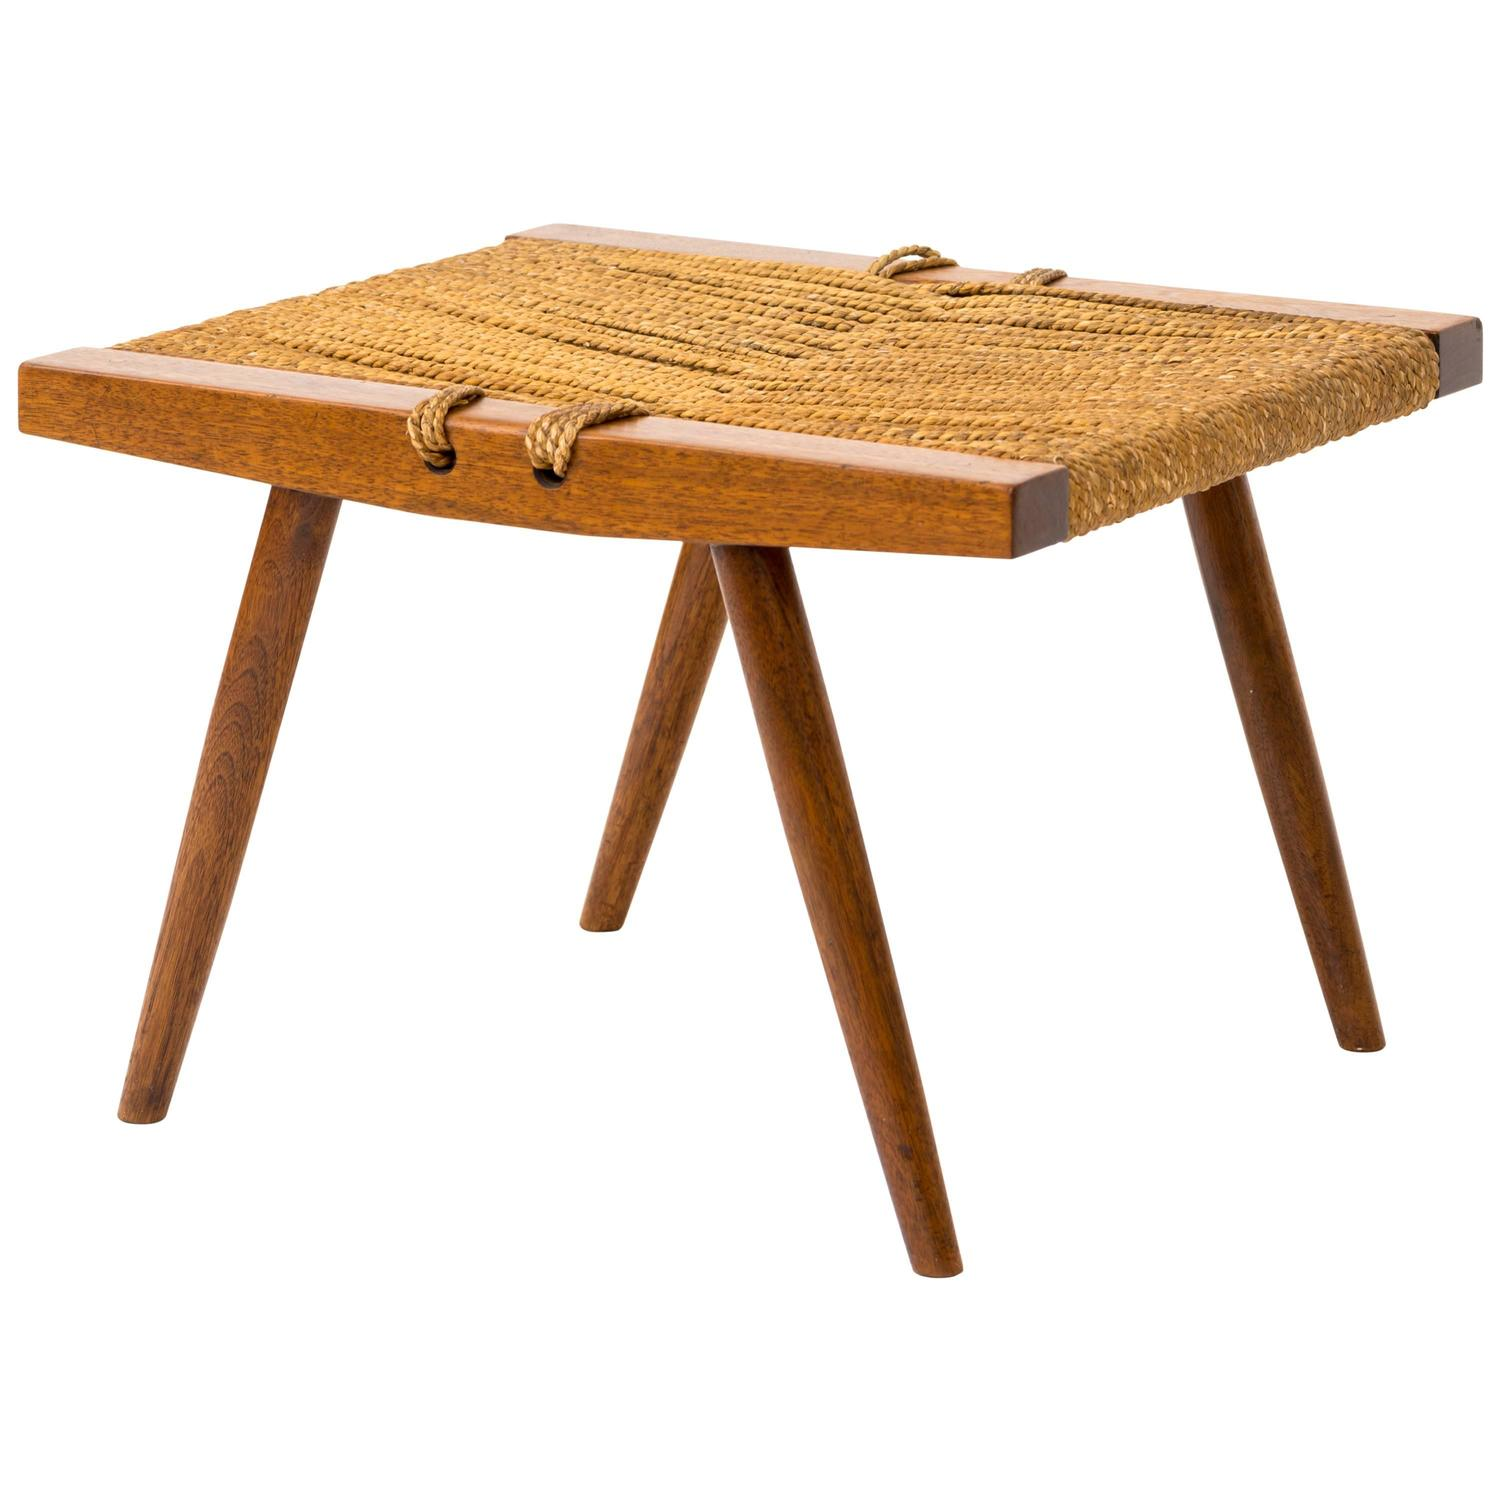 George Nakashima Dining Chair with Woven Grass Seat For Sale at